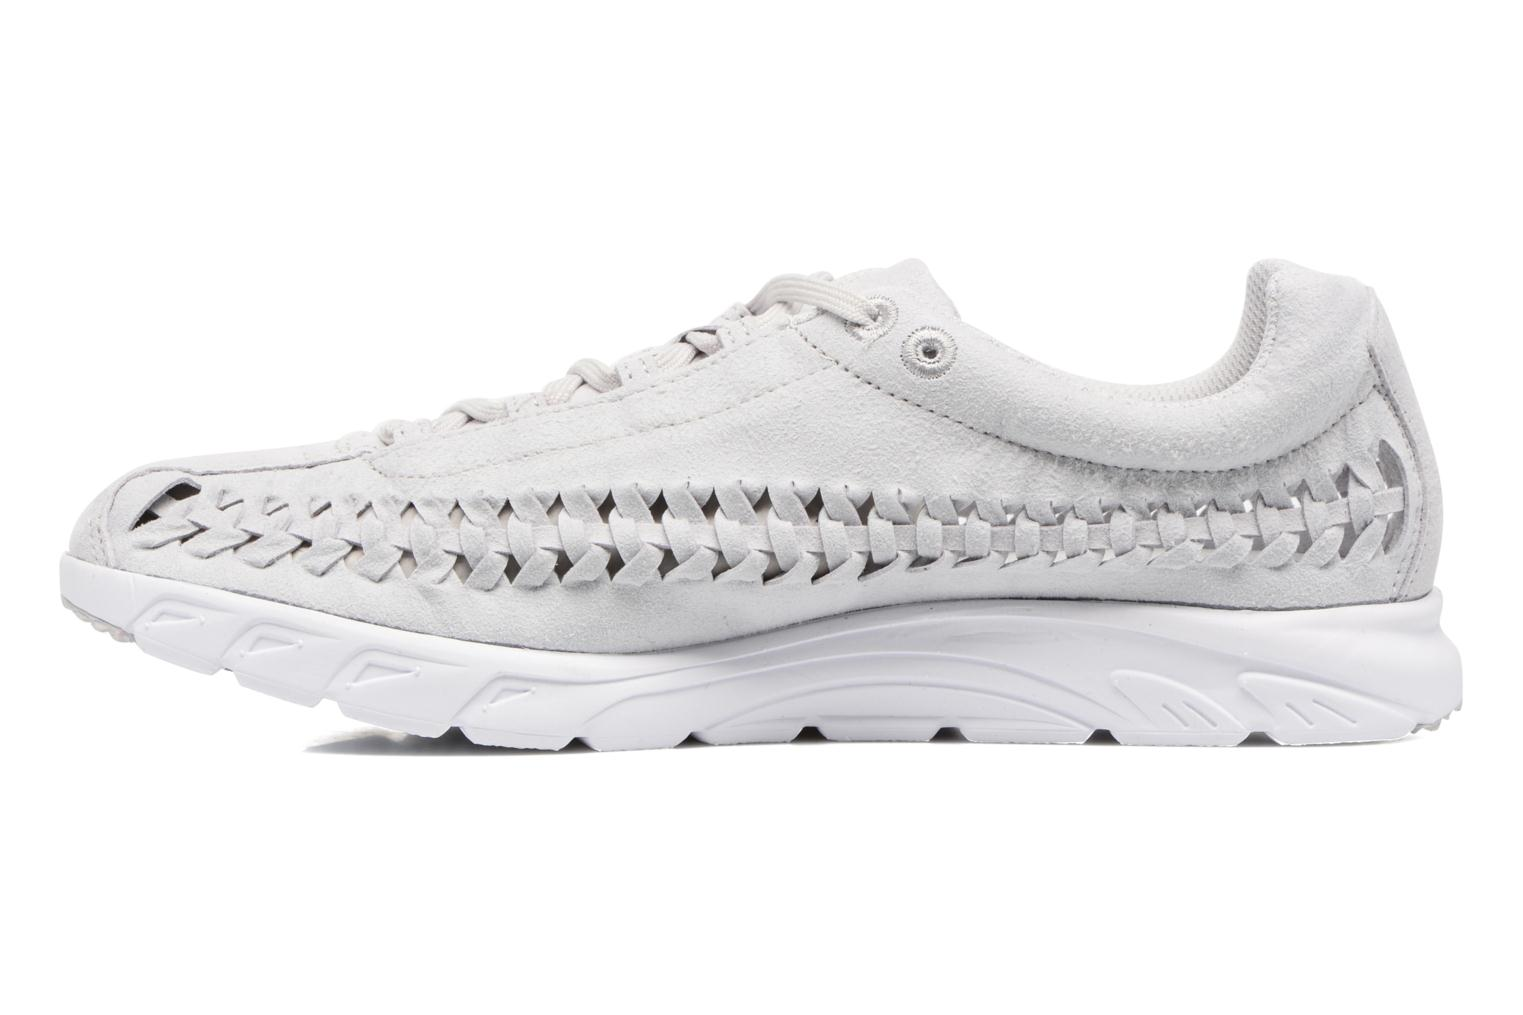 Nike Mayfly Woven NEUTRAL GREY/NEUTRAL GREY-WHITE